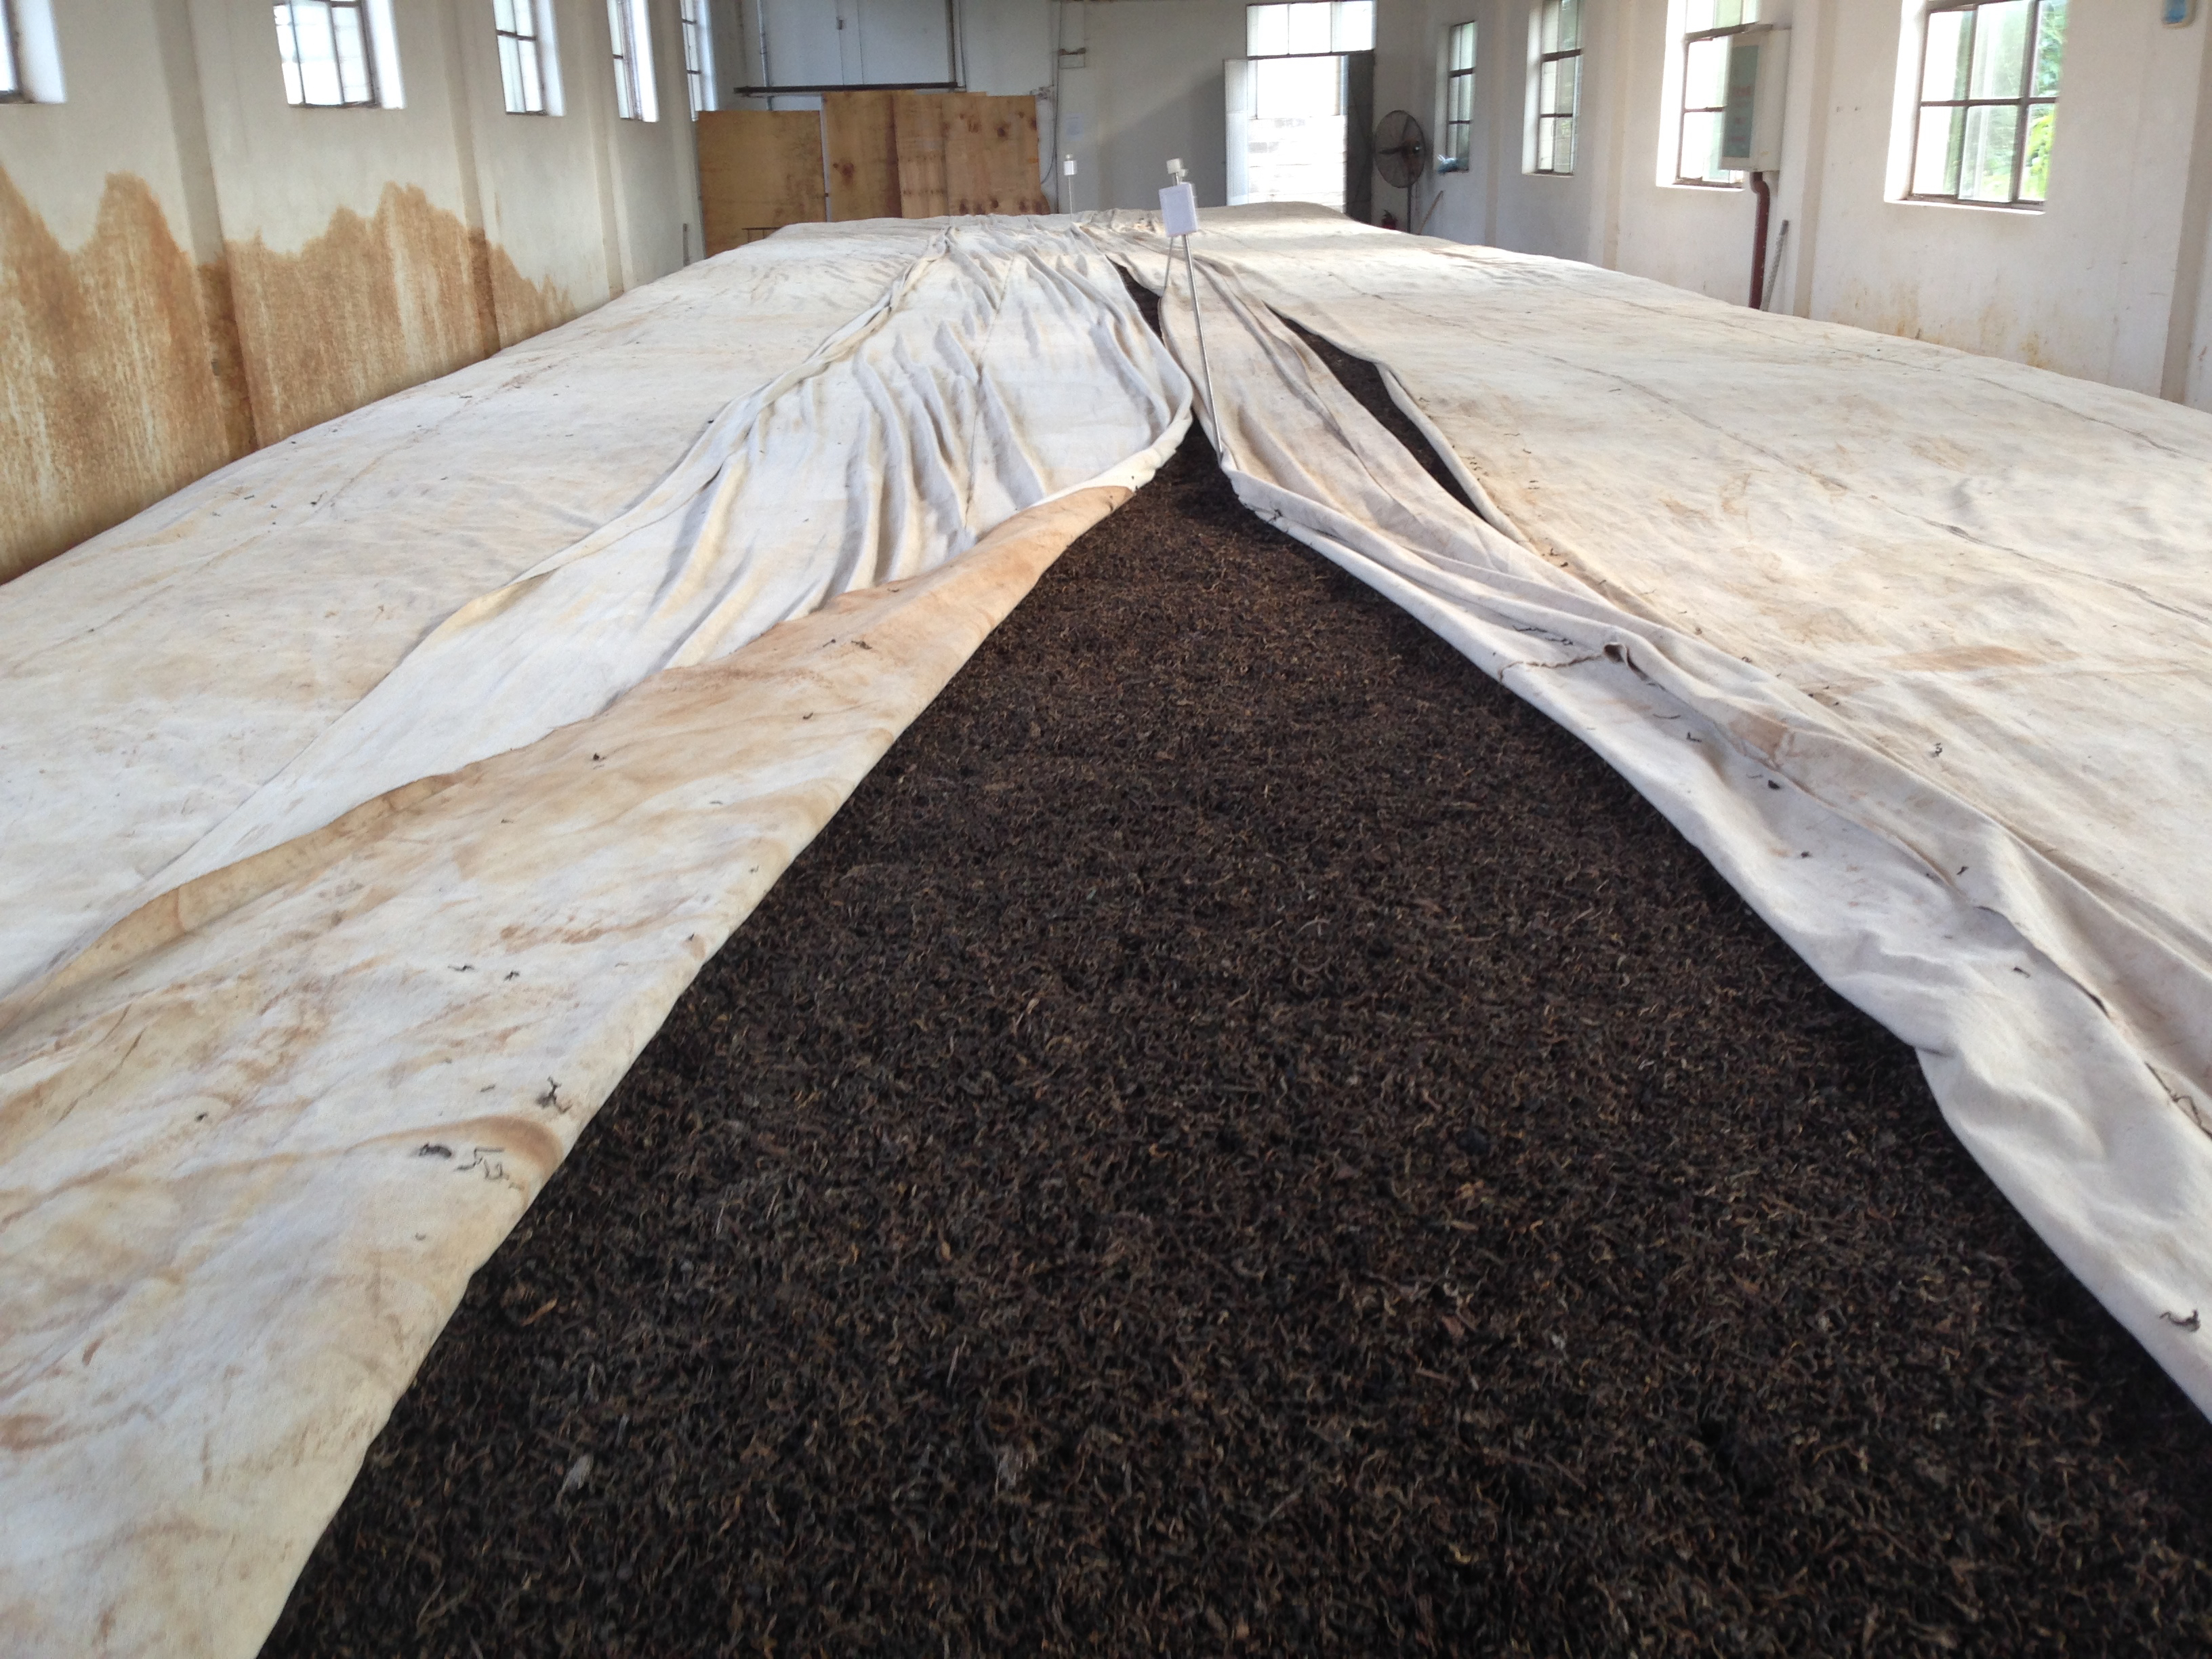 A very large pile of ripening shu puer teaves, partly covered with cloth.